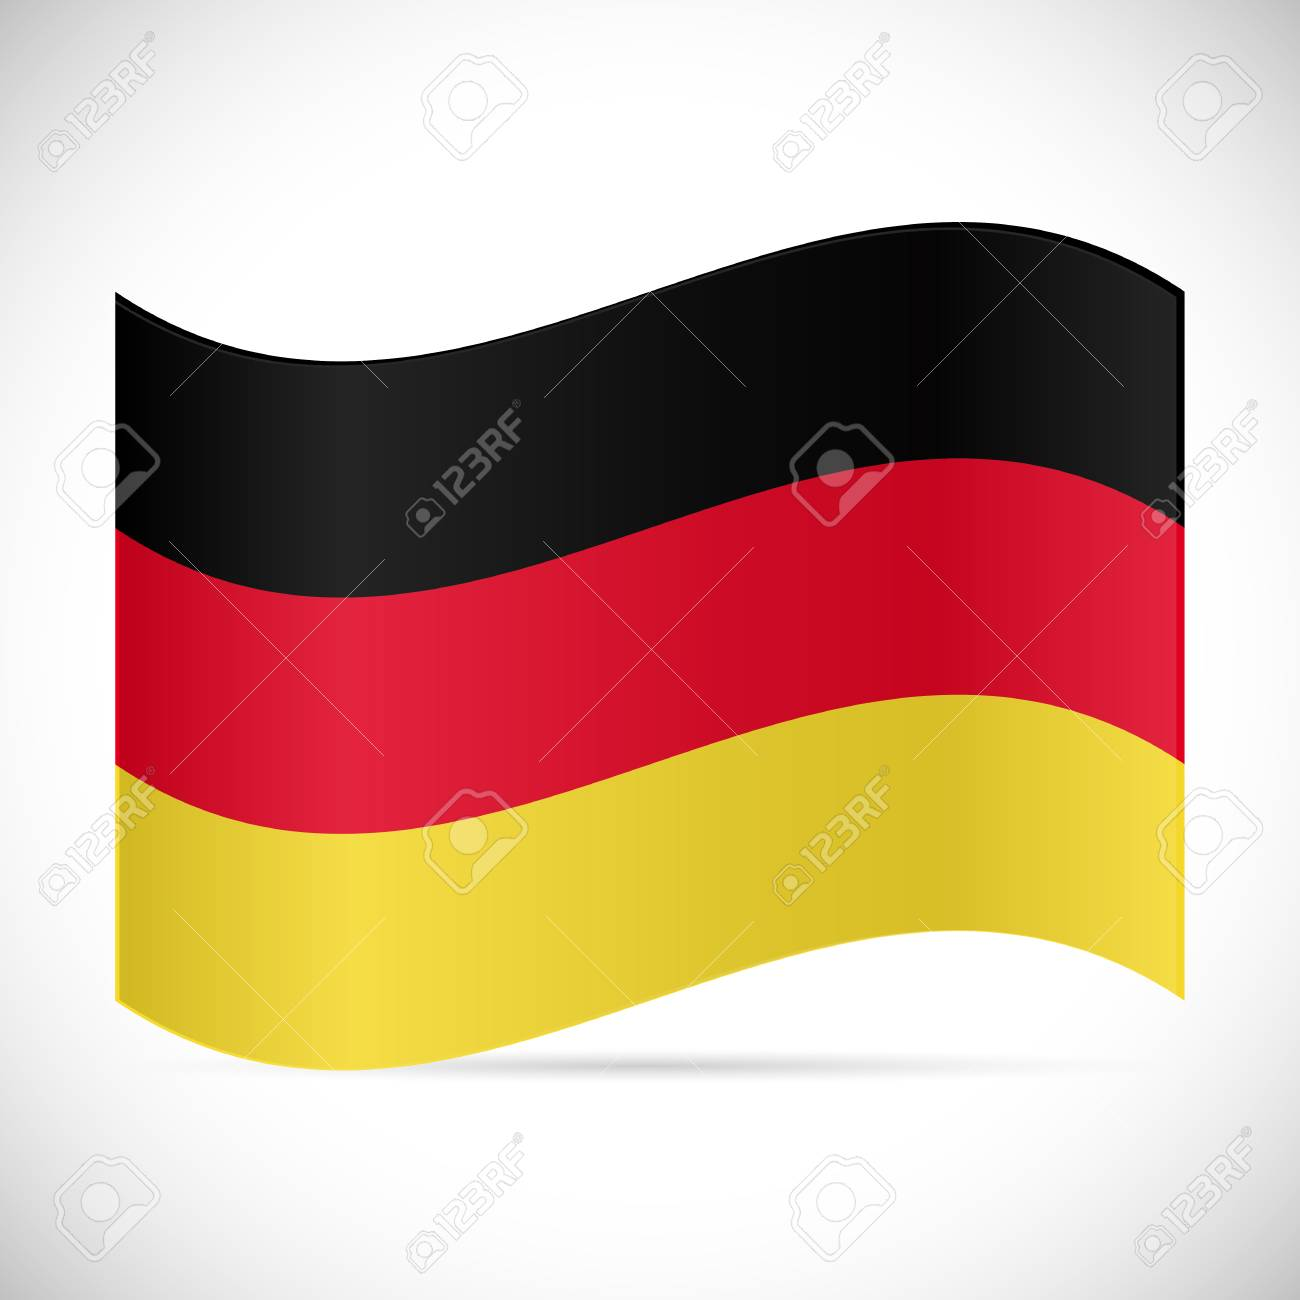 Illustration of the flag of Germany isolated on a white background. - 97016059